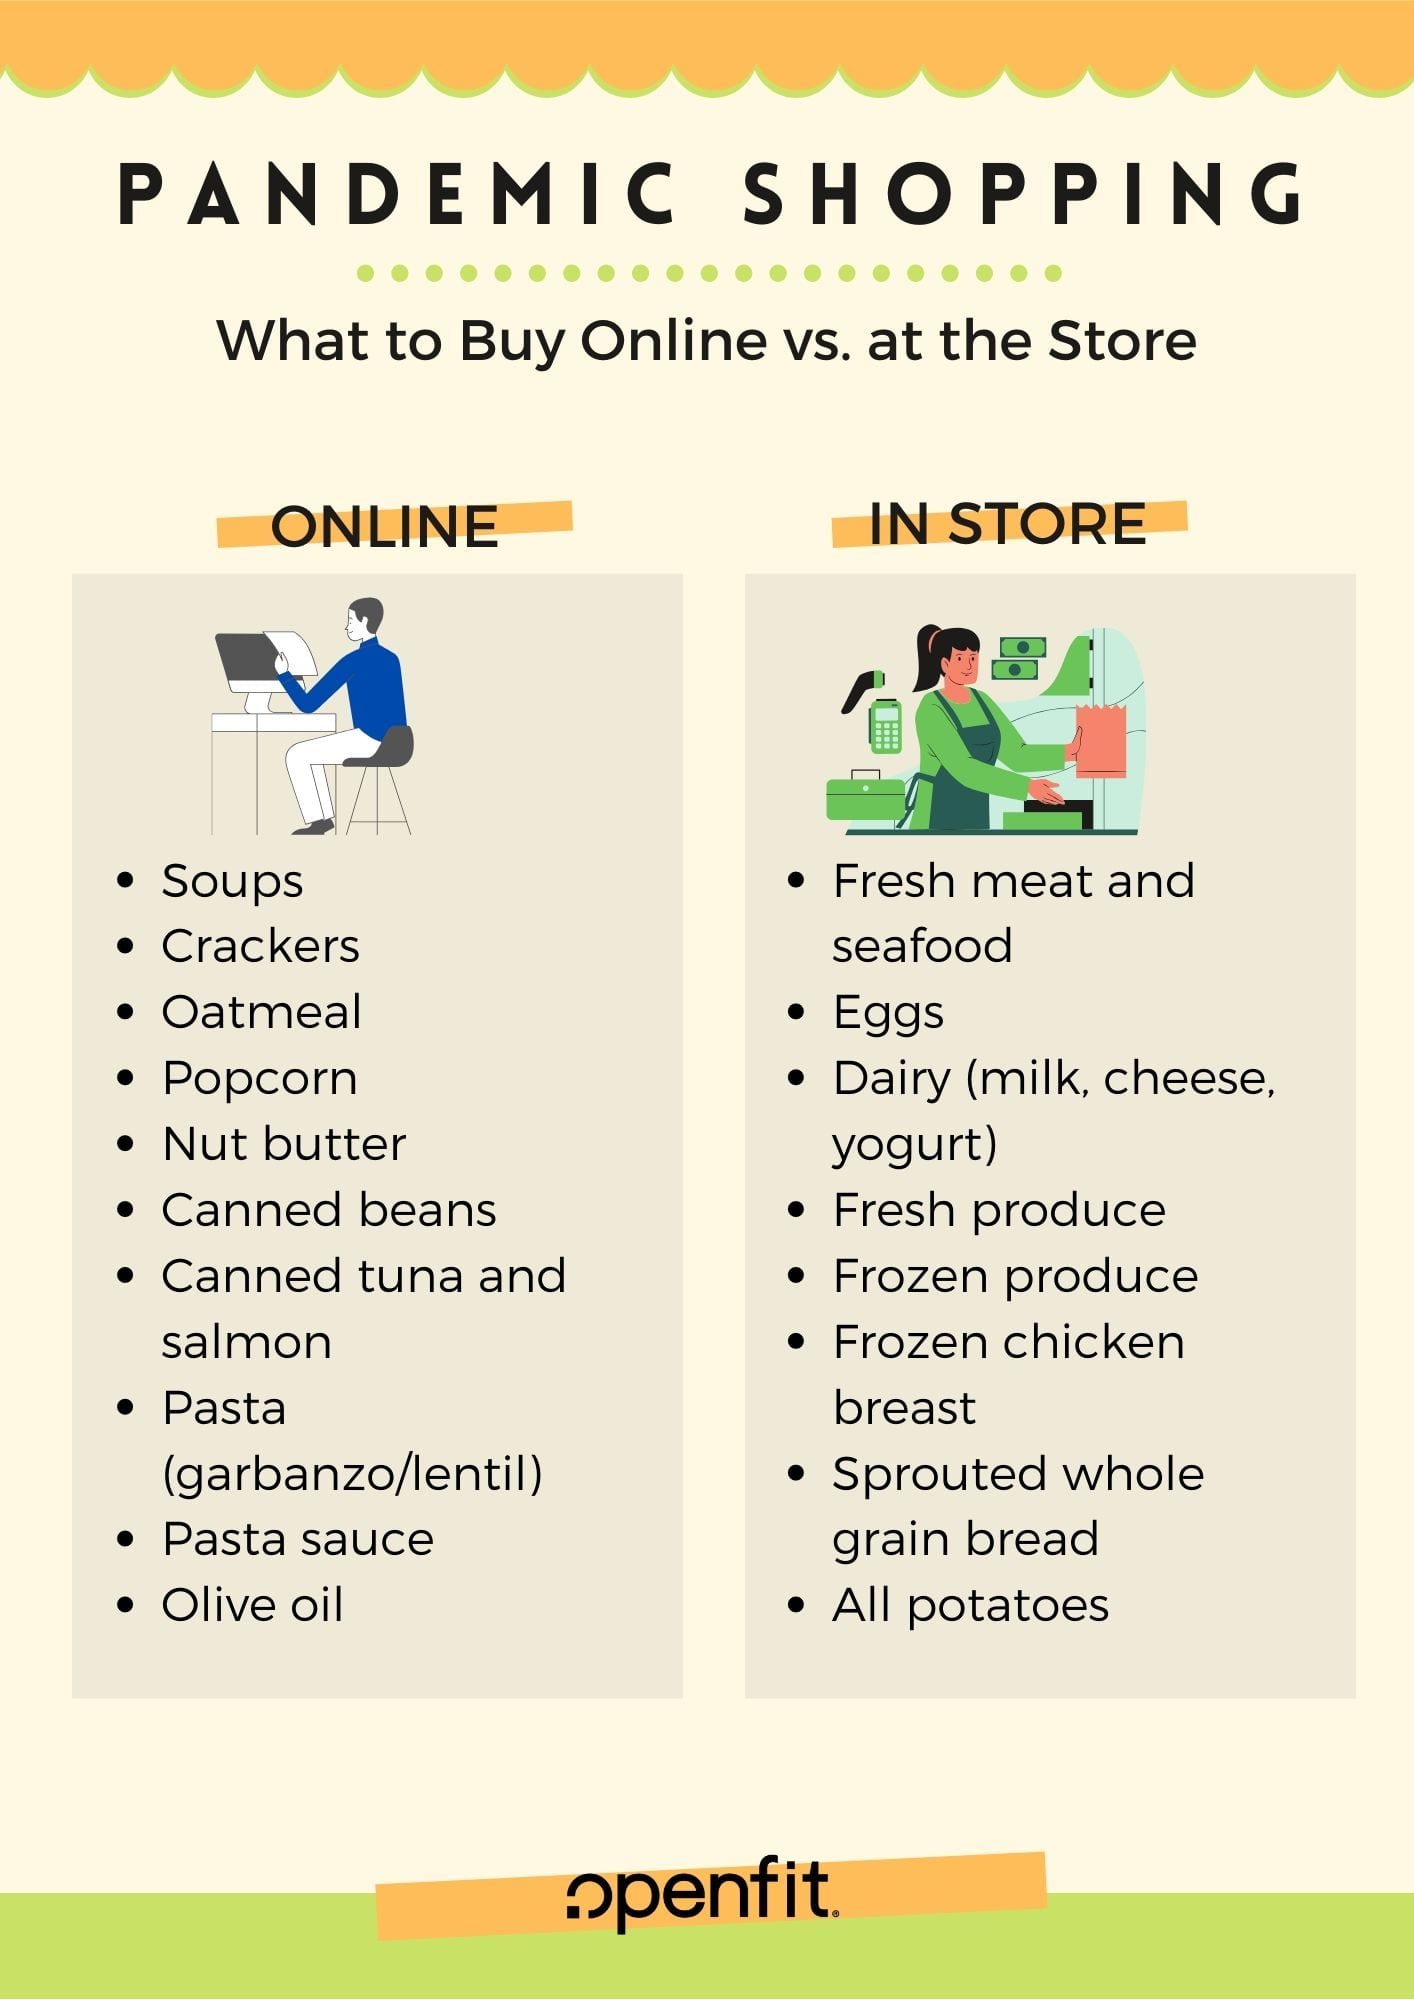 pandemic shopping list - graphic for online vs in store